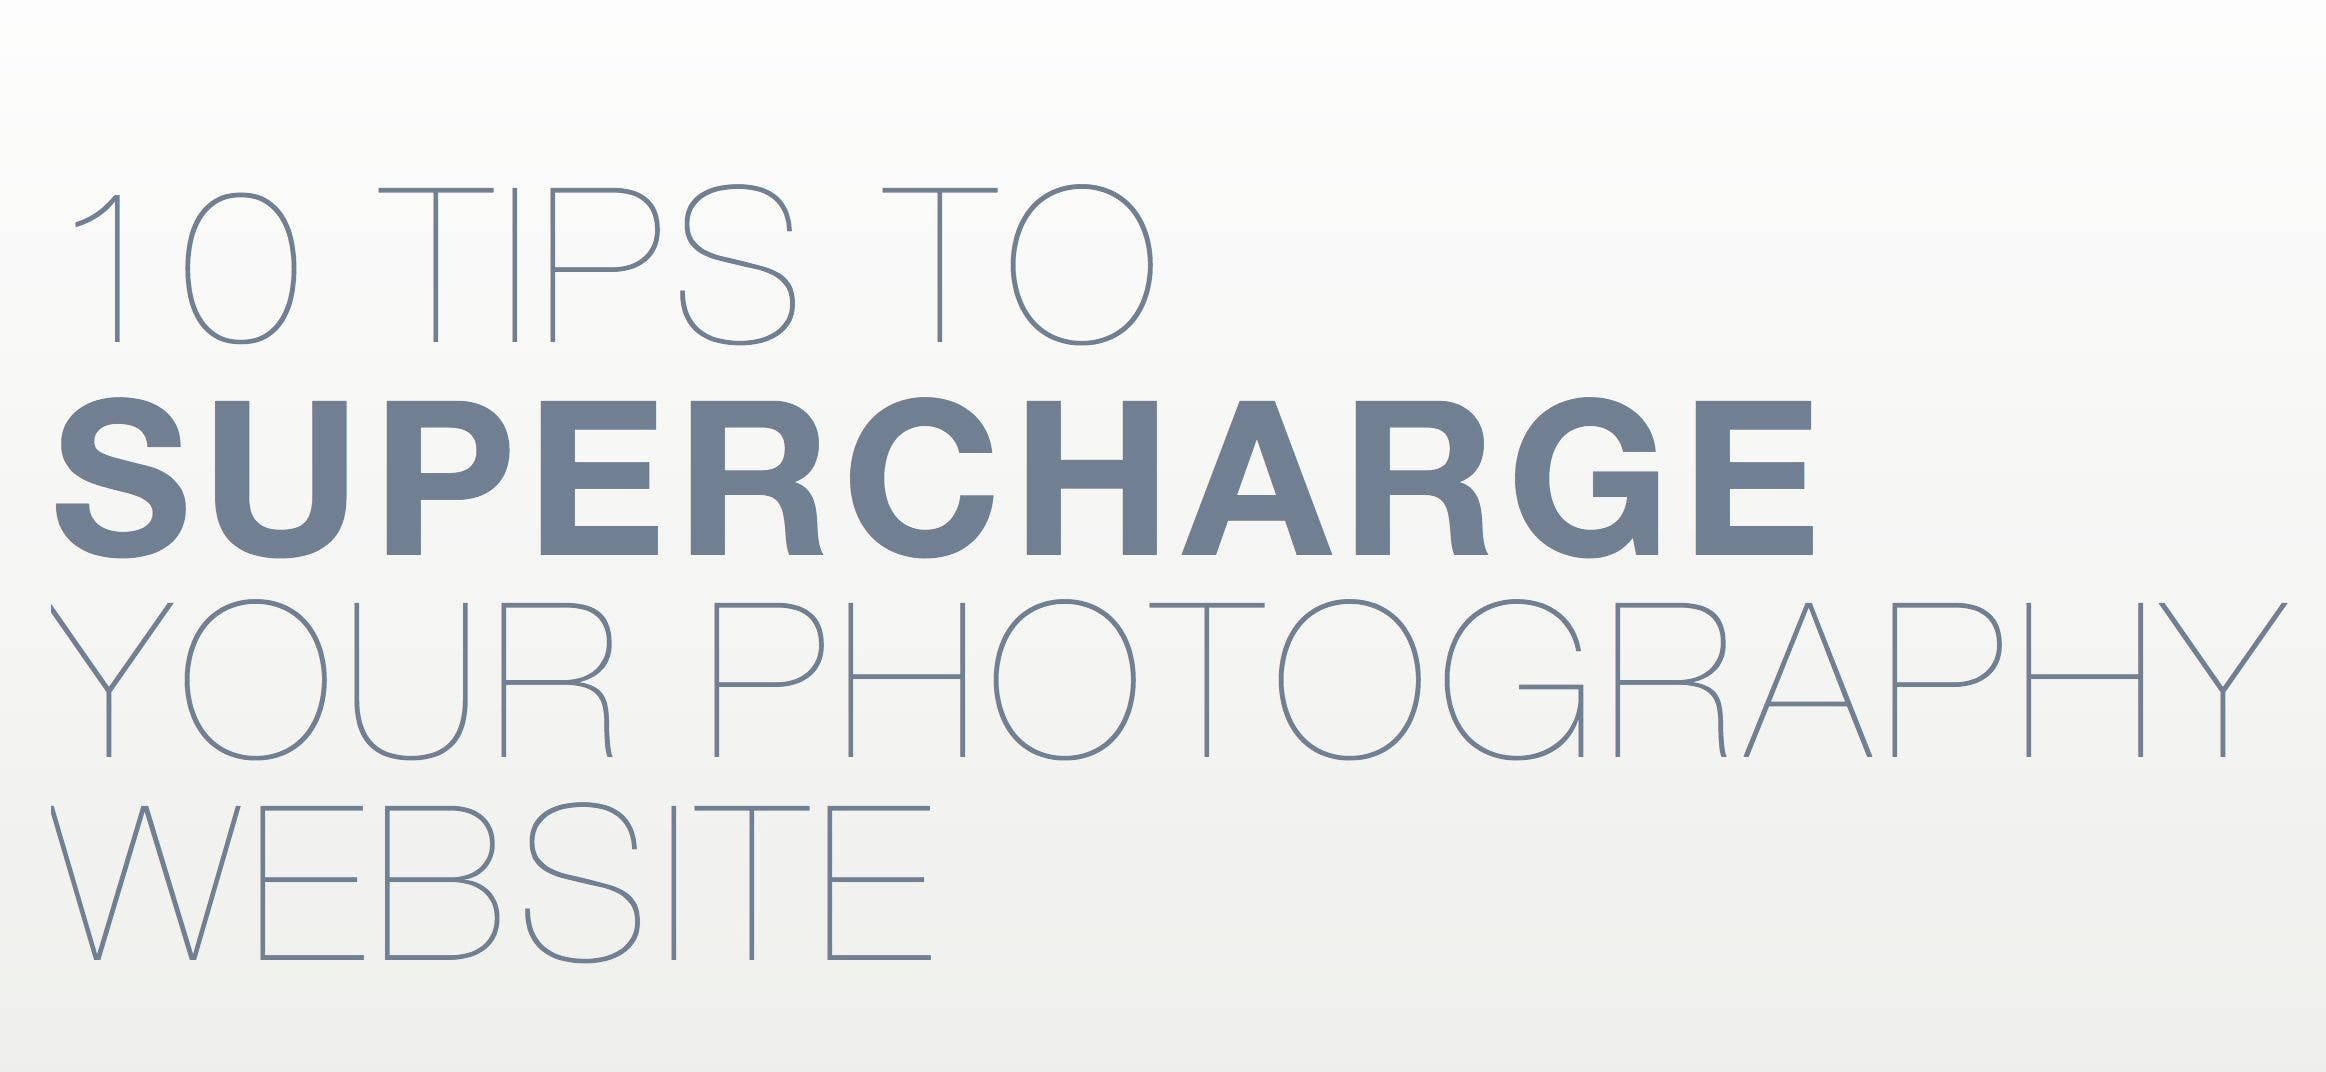 10 Tips to Supercharge Your Photography Website by Photocrati Is Filled With Nifty Tips